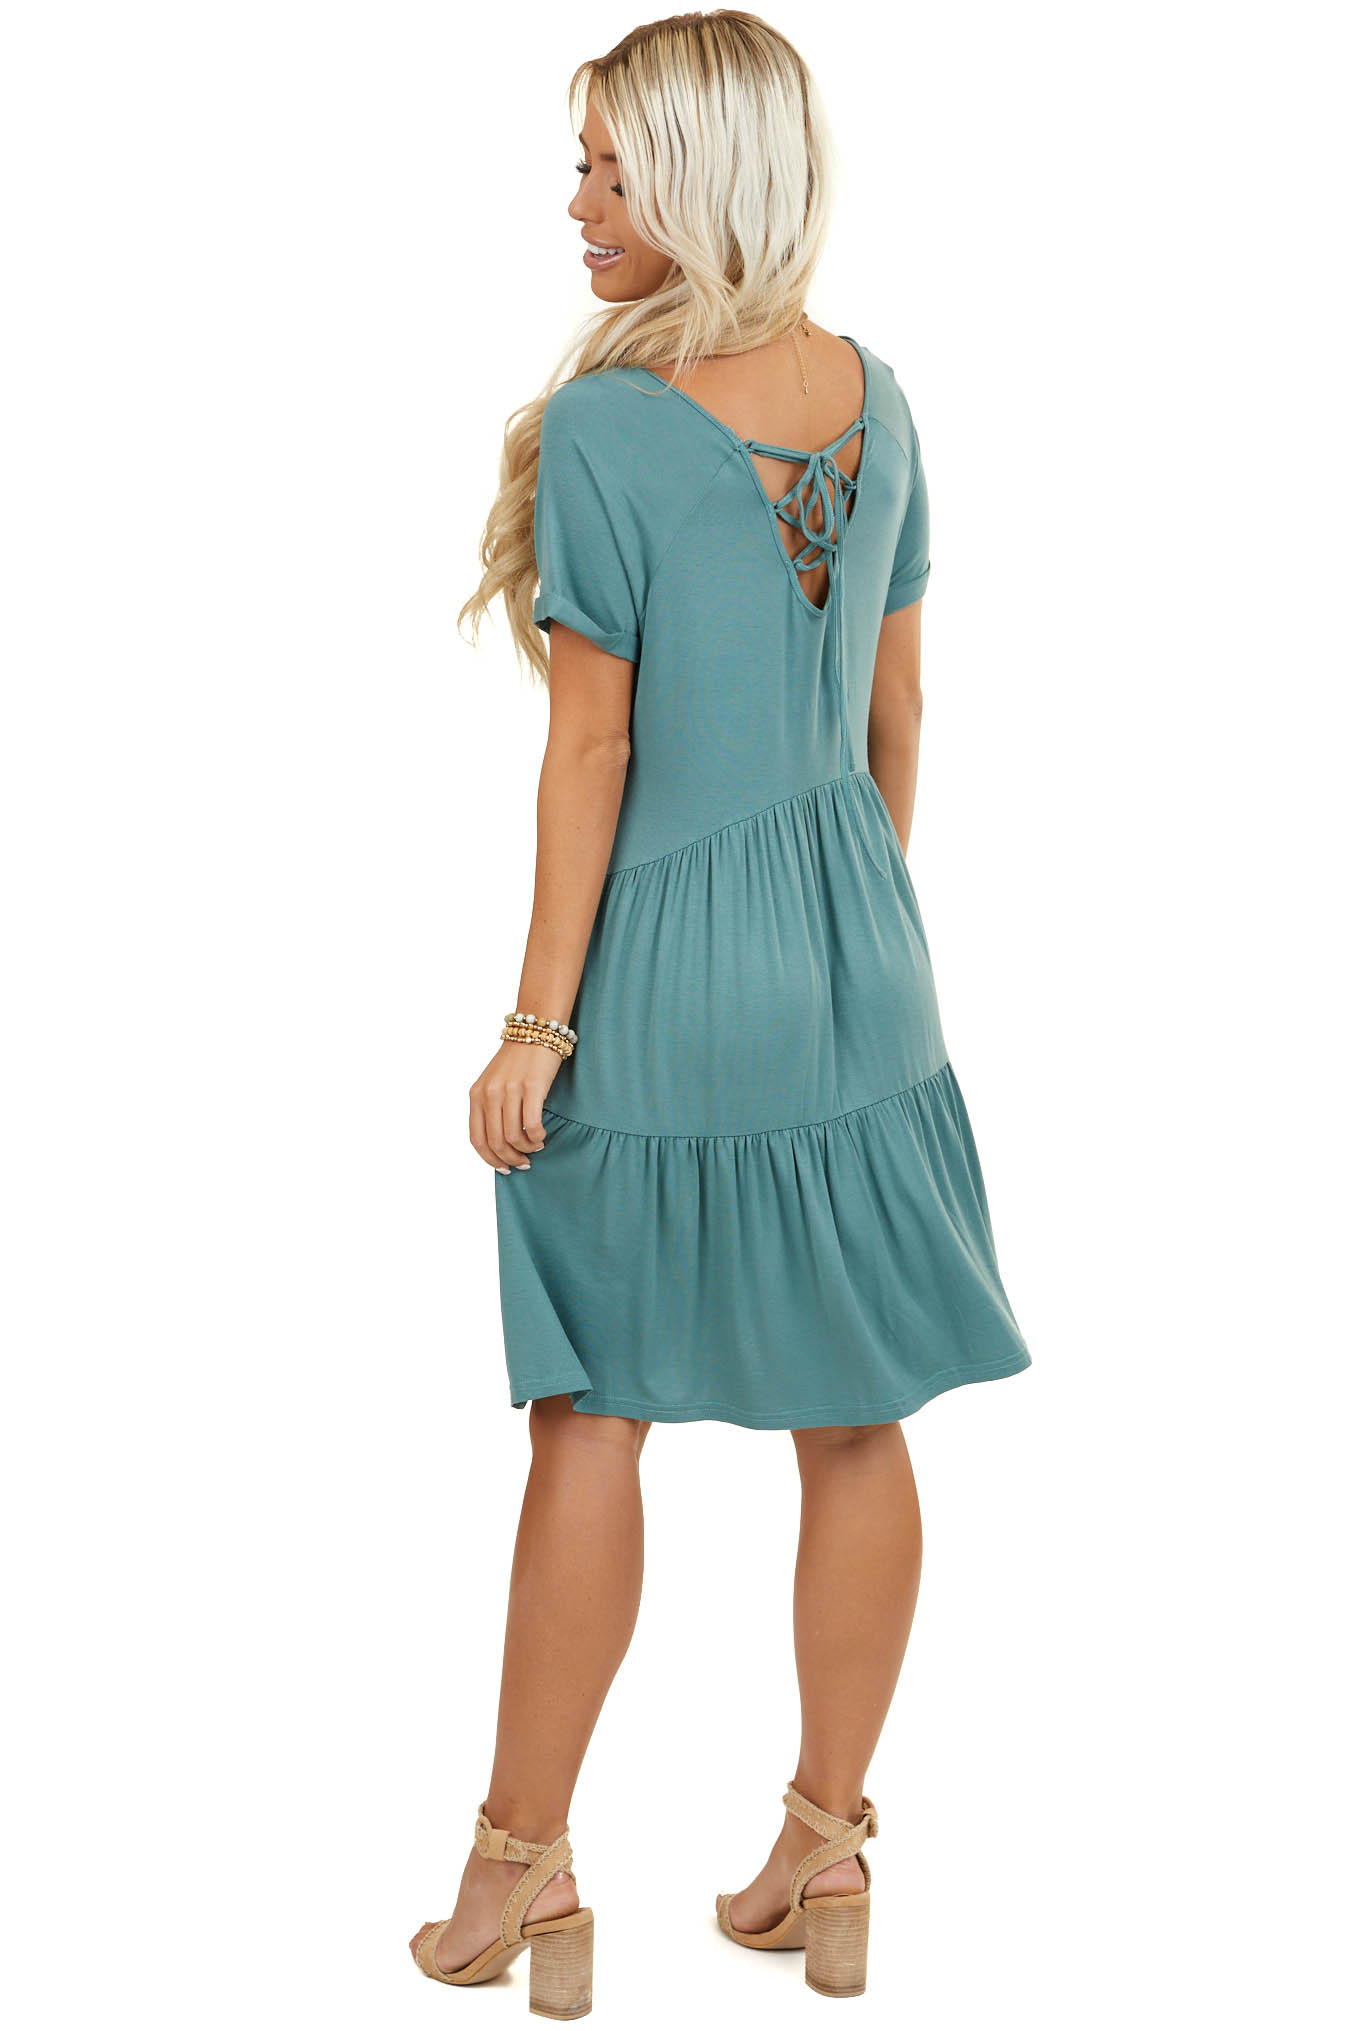 Pine Green Criss Cross Laced Up Back Tiered Short Knit Dress